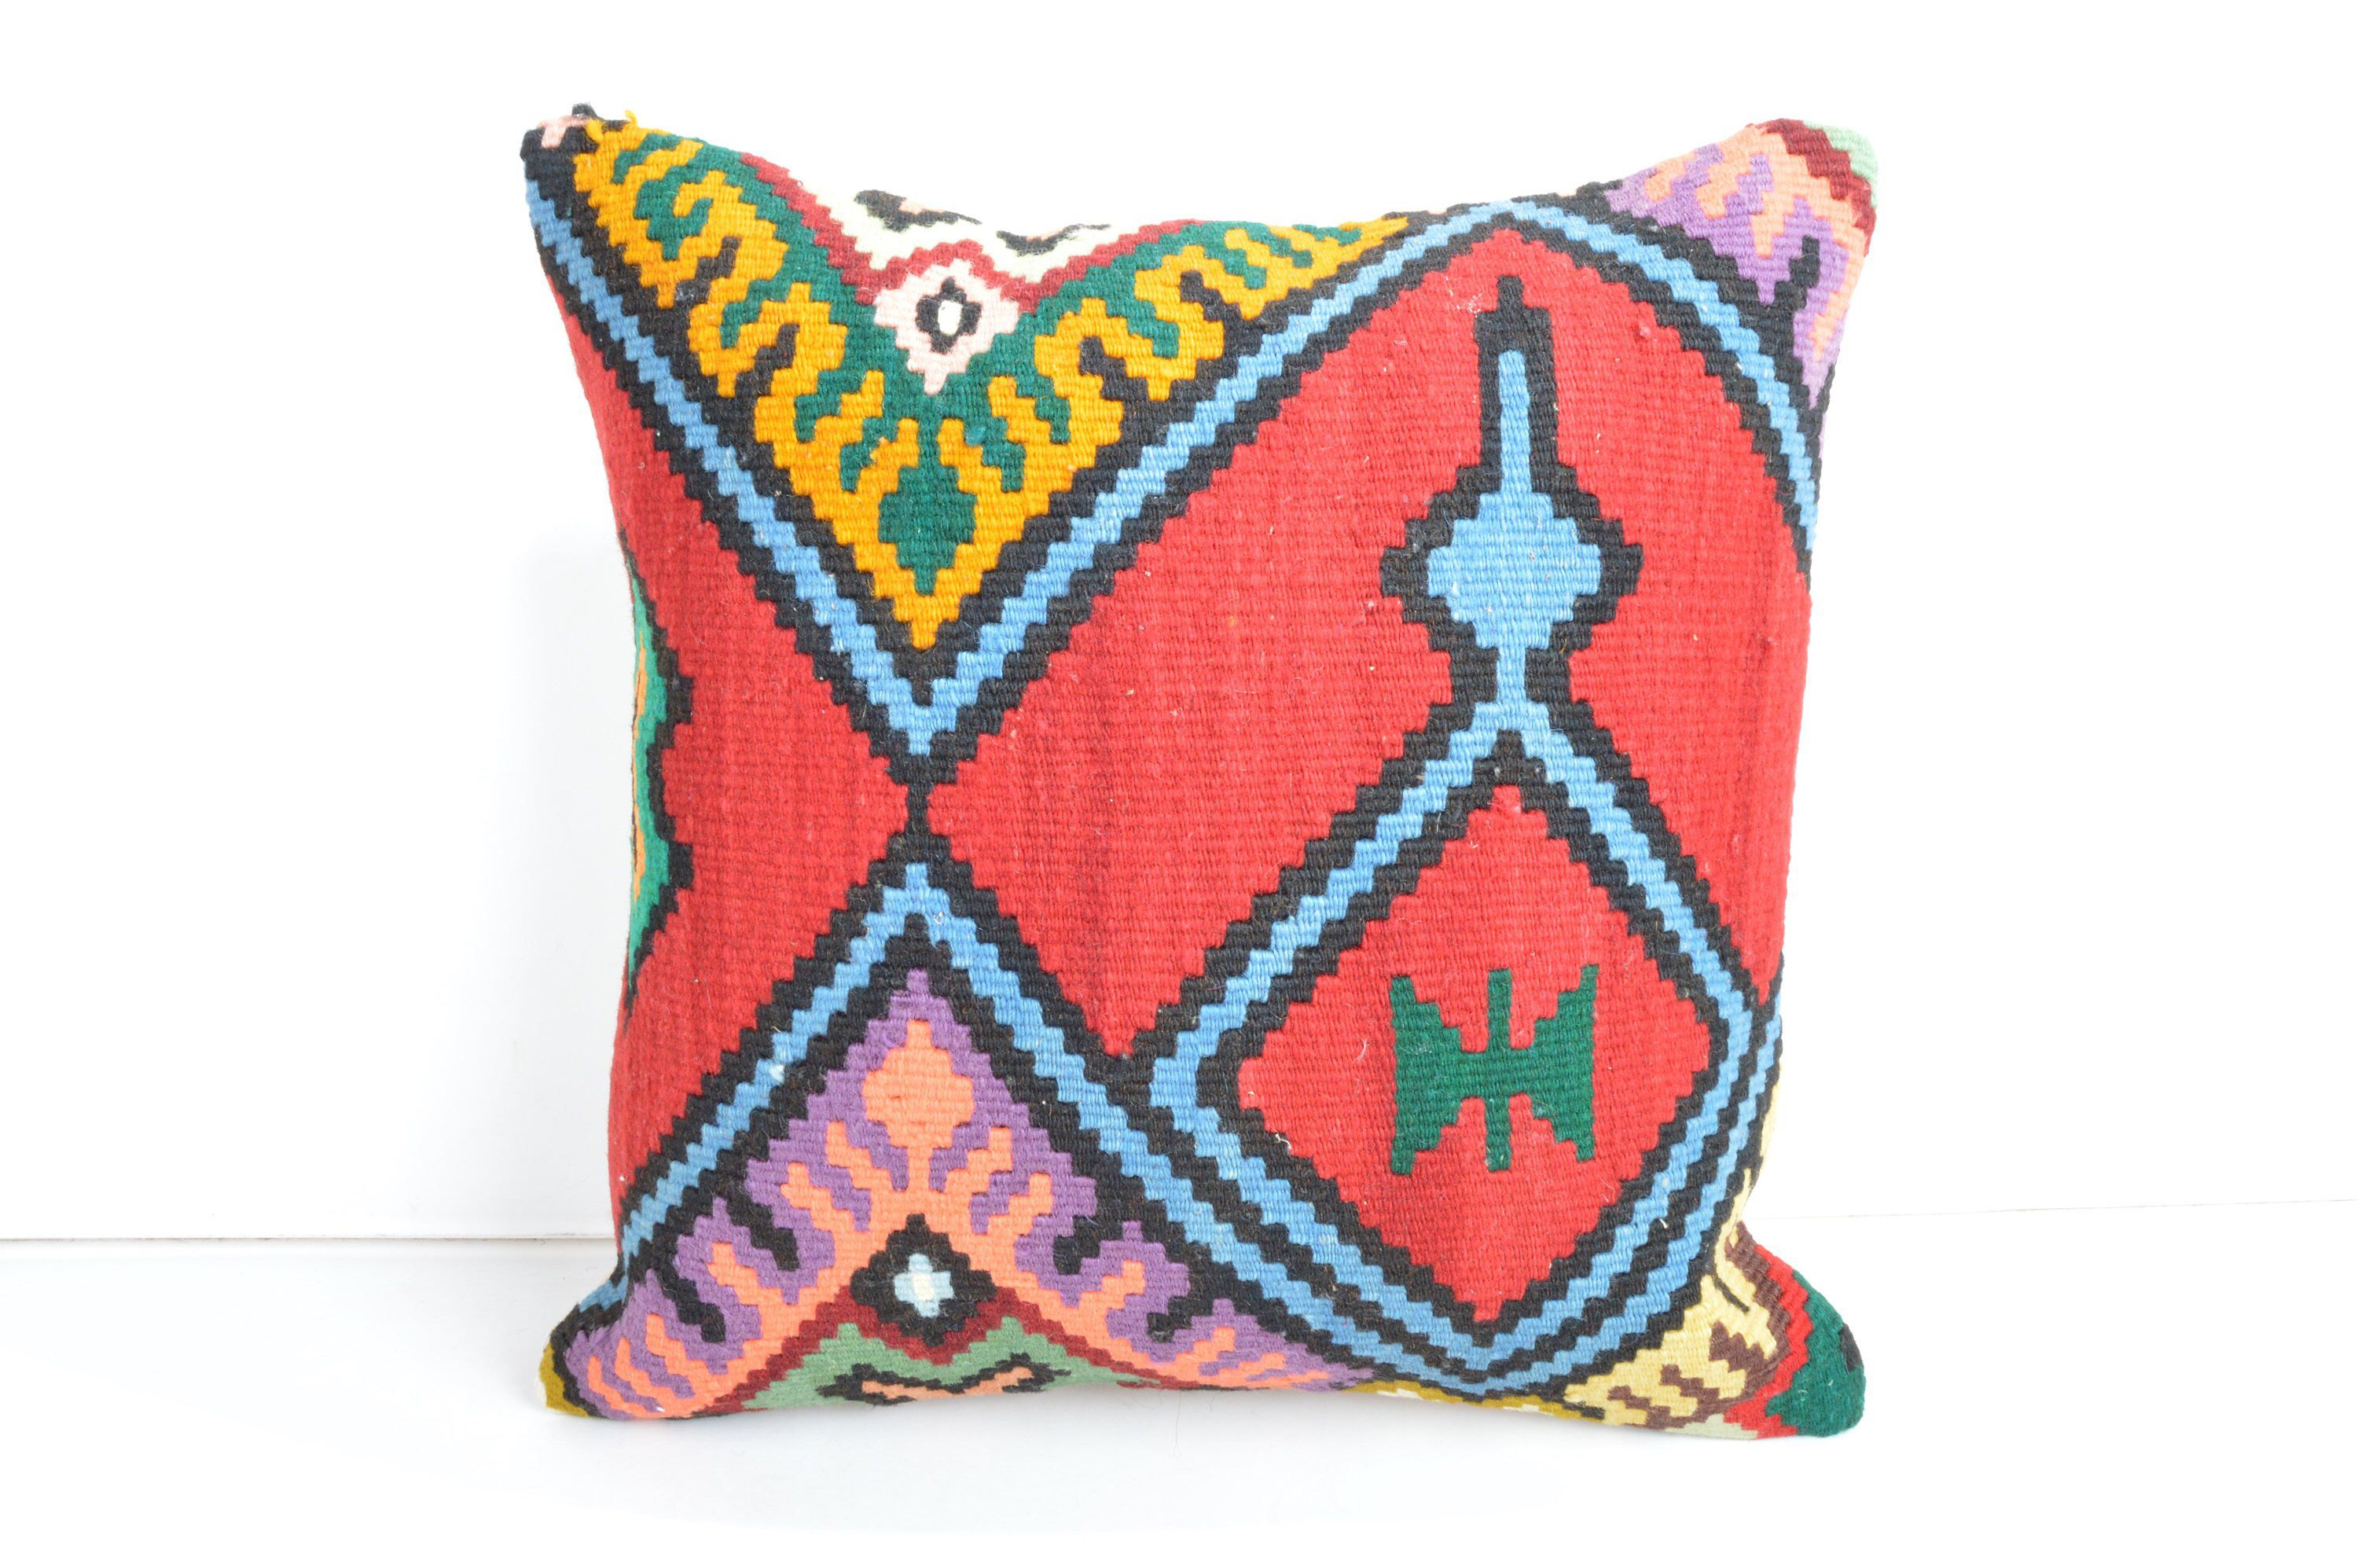 Pin by laura brangle on throw pillows in pinterest pillows